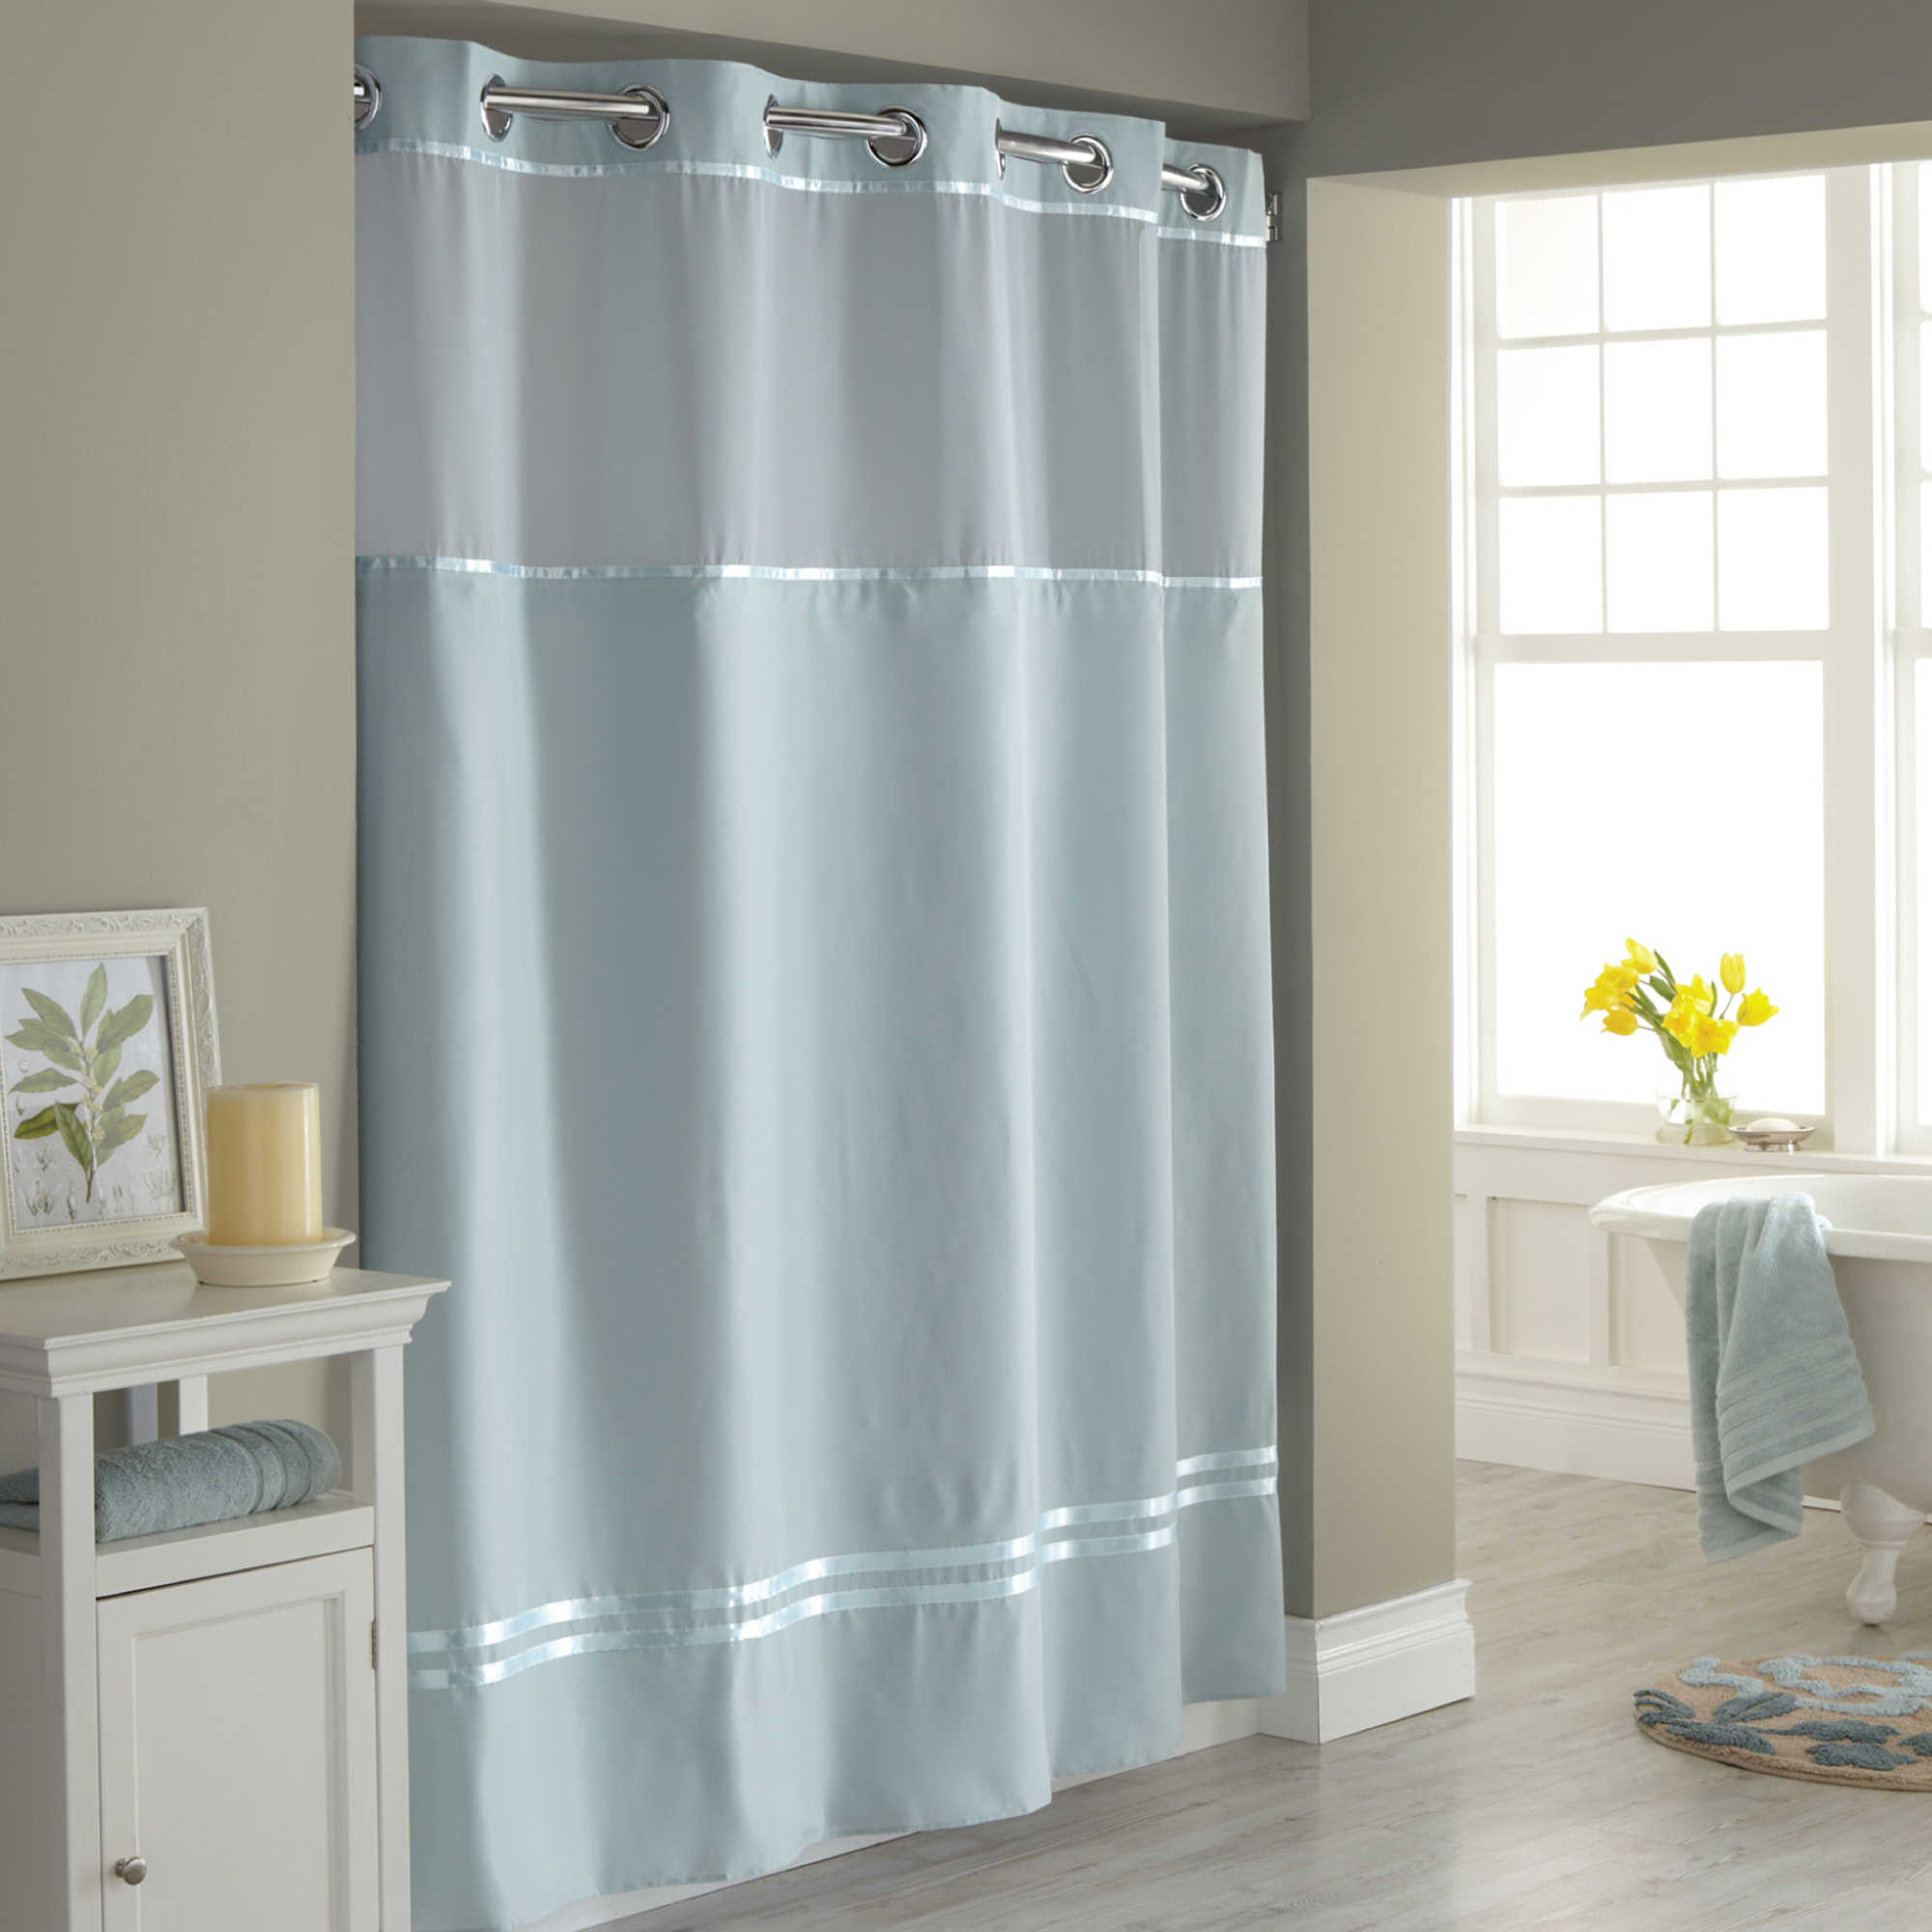 Narrow Clear Shower Curtain Curtains Ideas